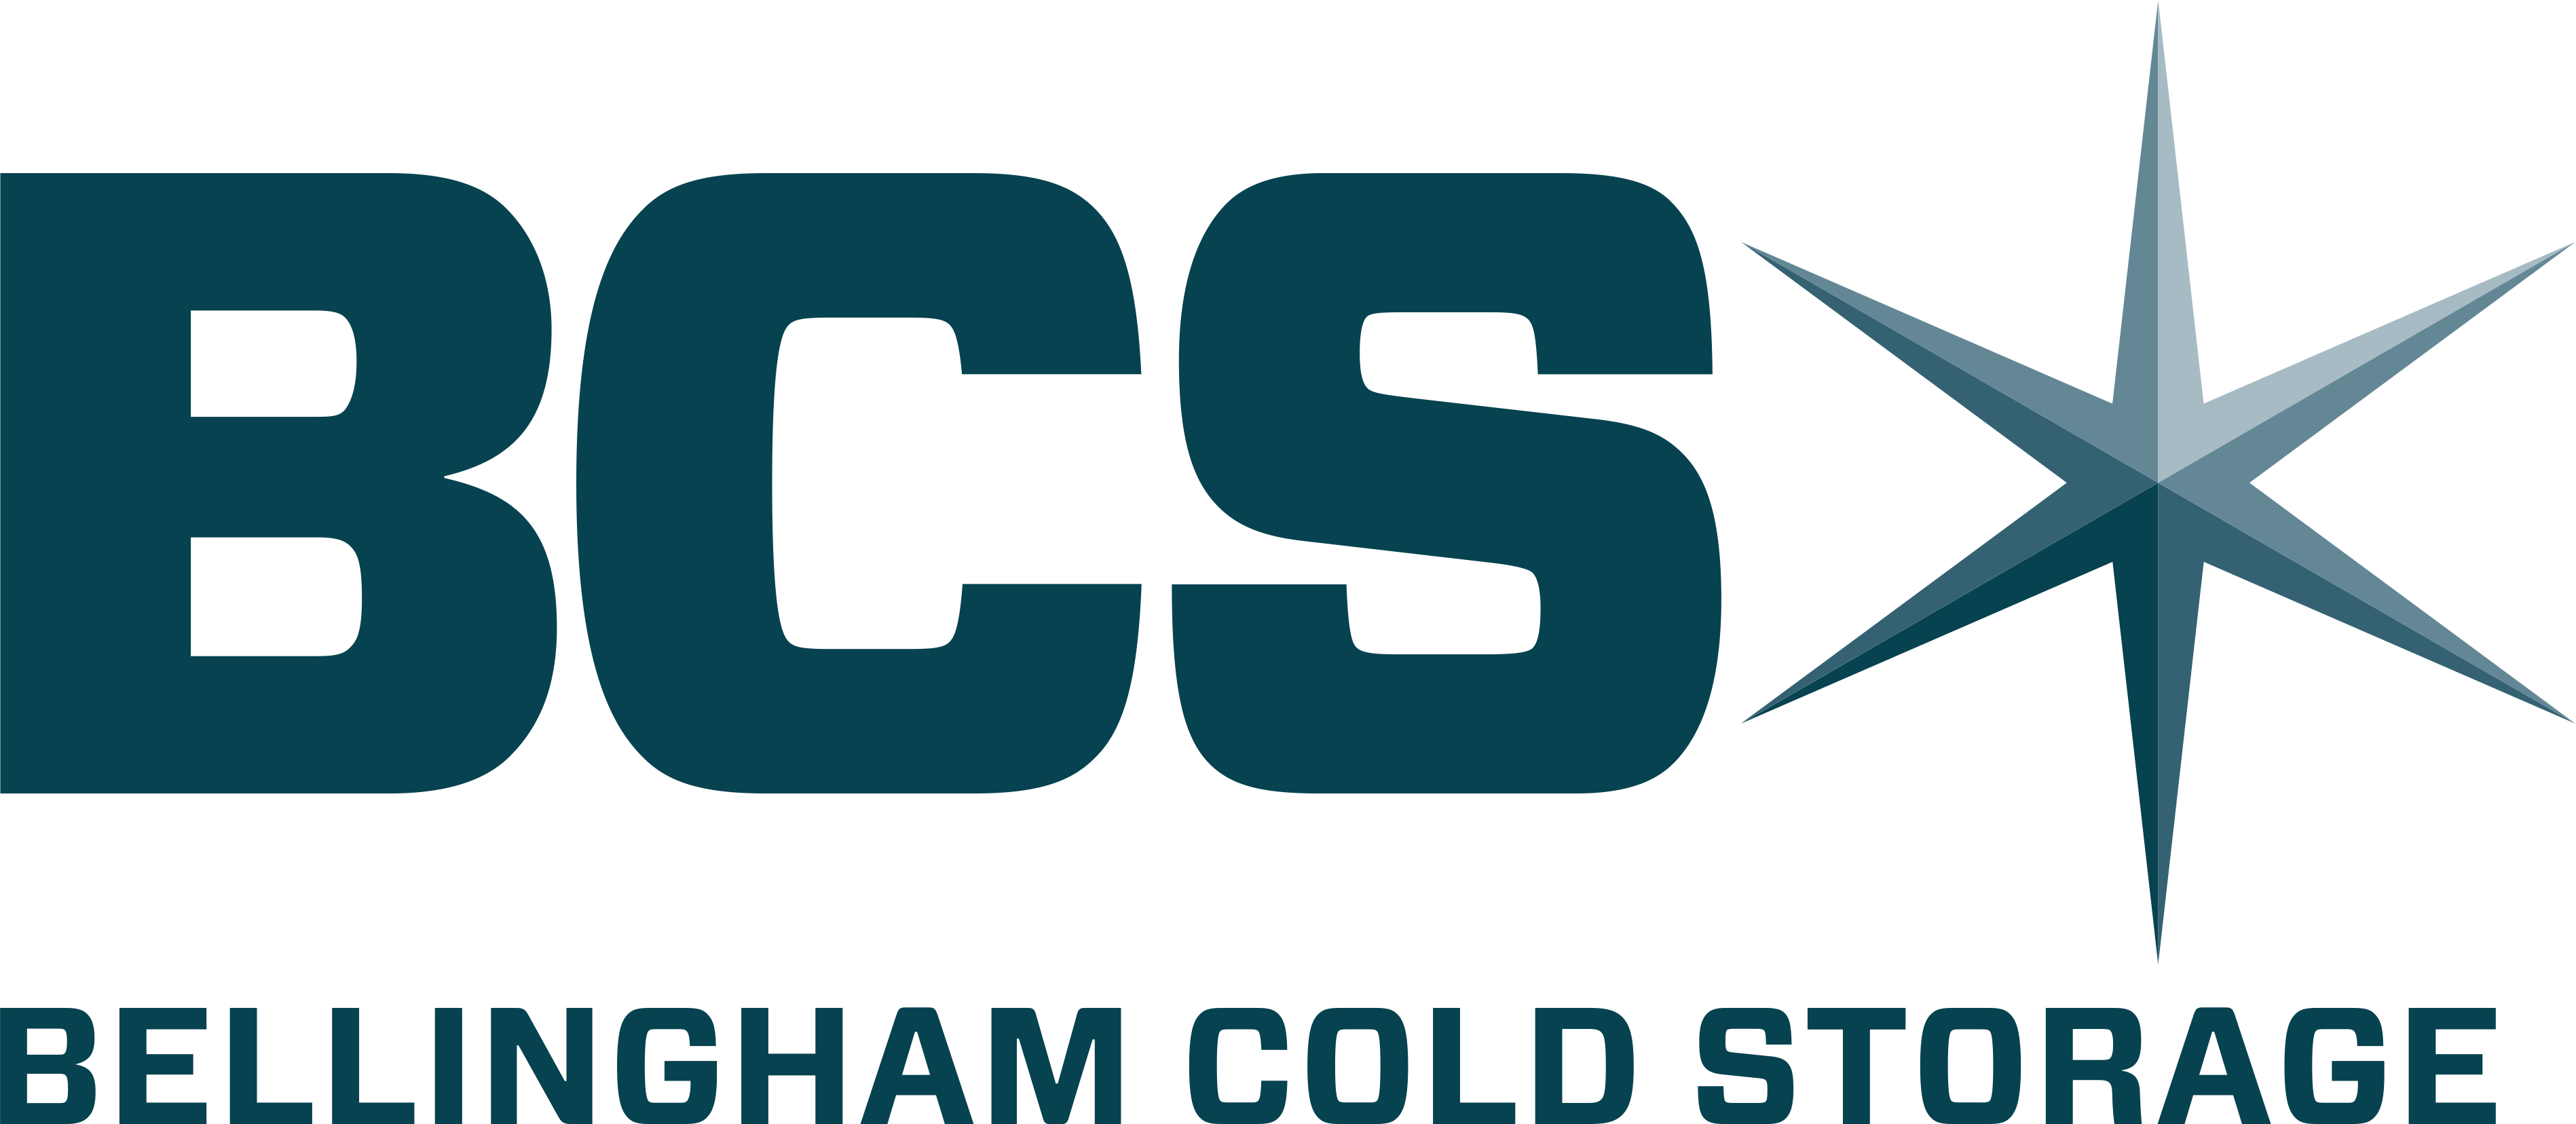 Bellingham Cold Storage logo